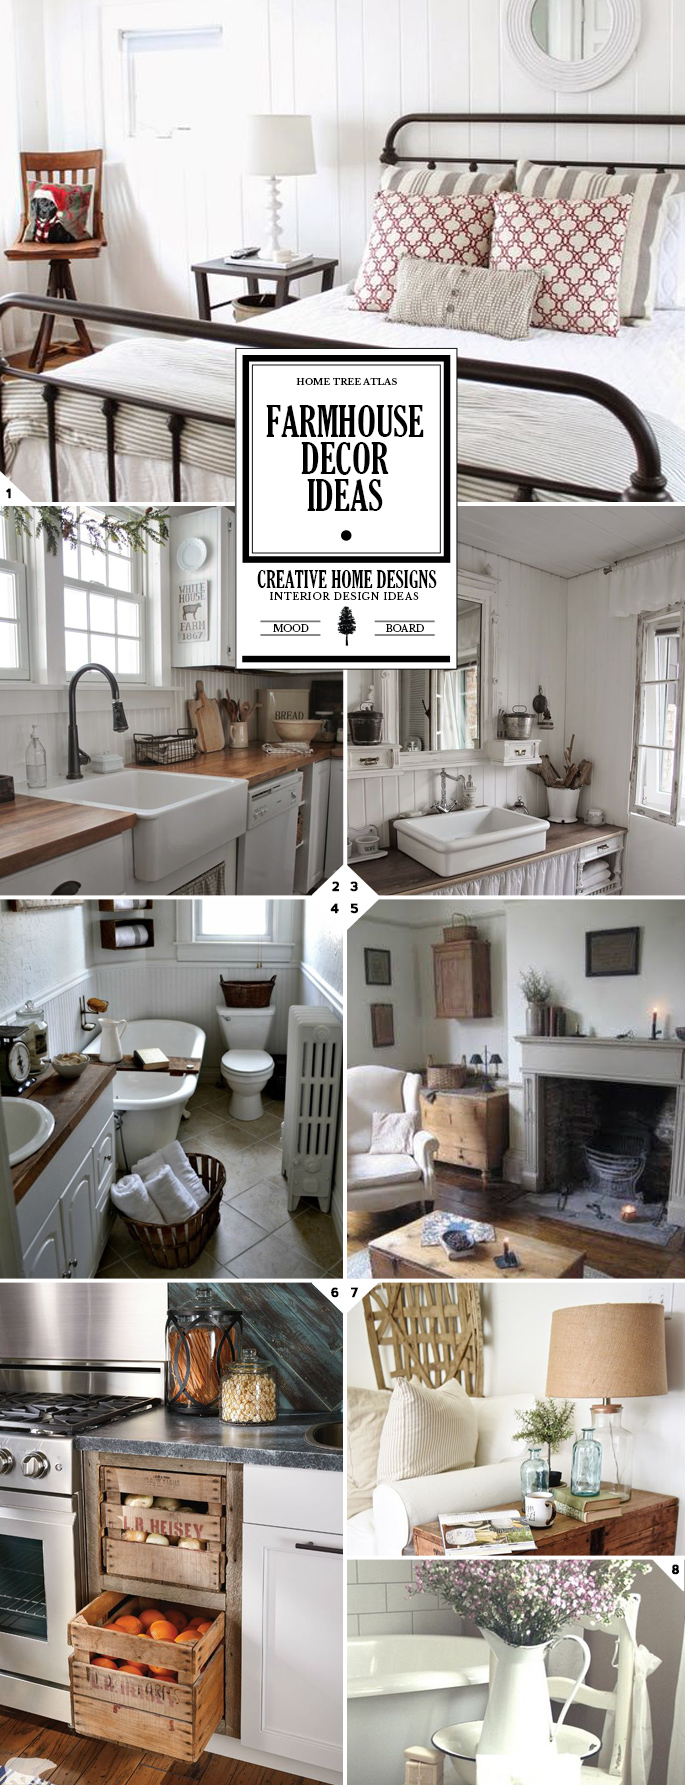 Vintage and rustic farmhouse decor ideas design guide Vintage house decor